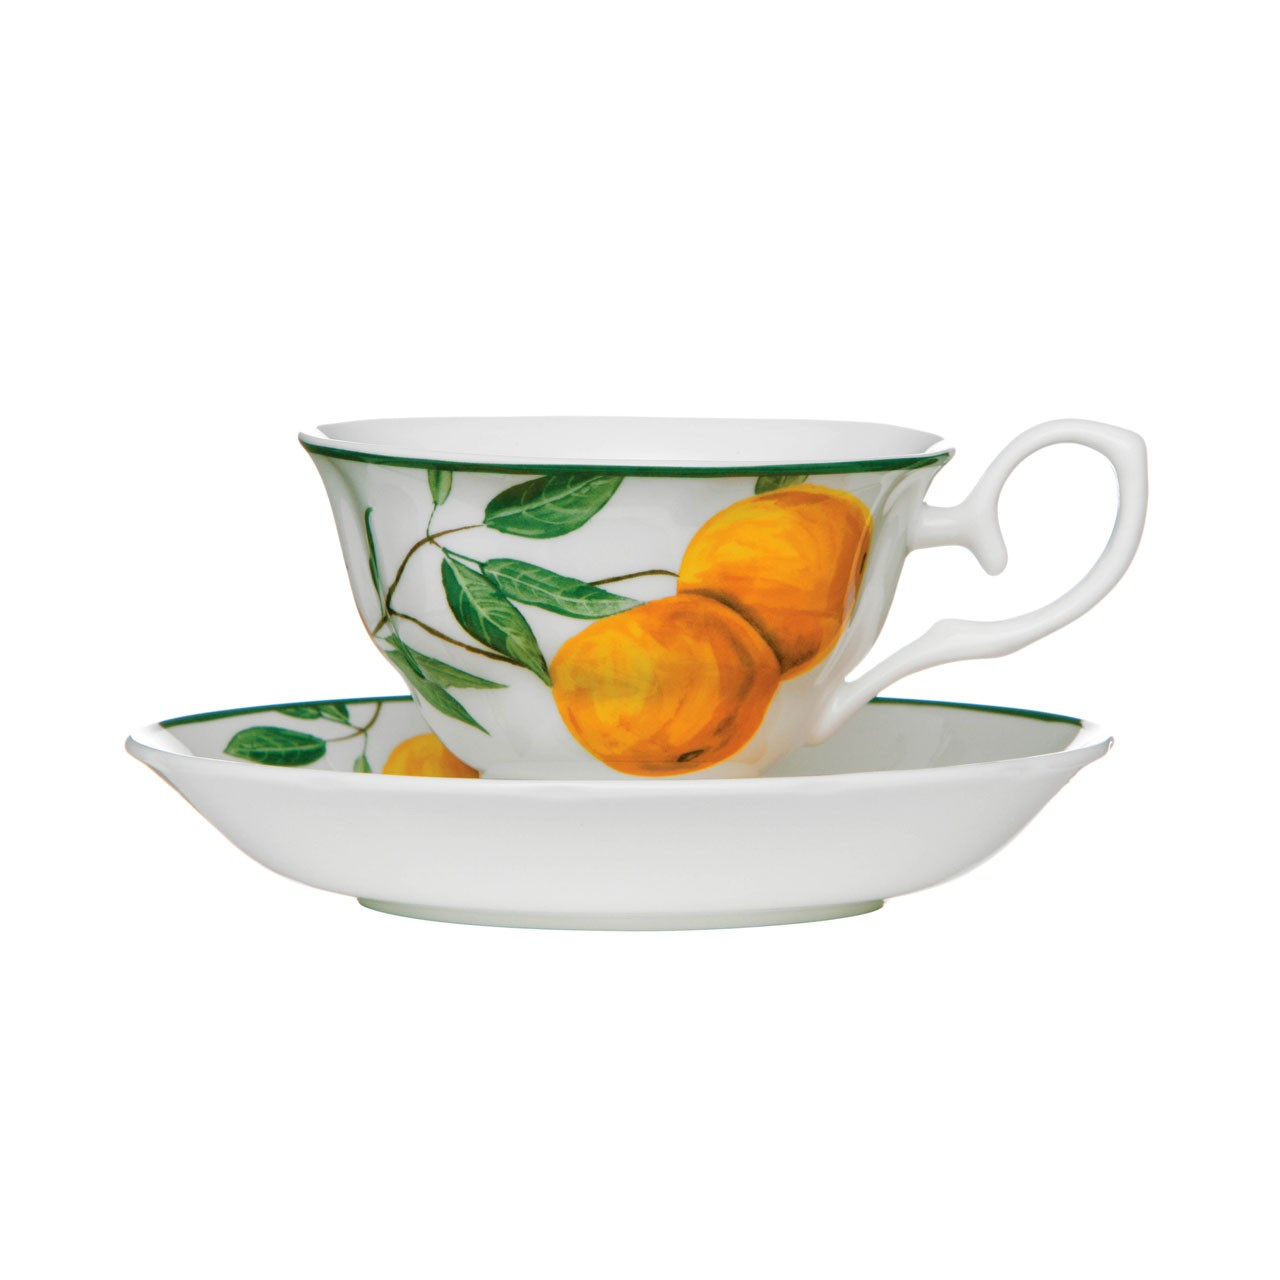 Cup And Saucer Orange Grove Set of 2 160ml Bone China